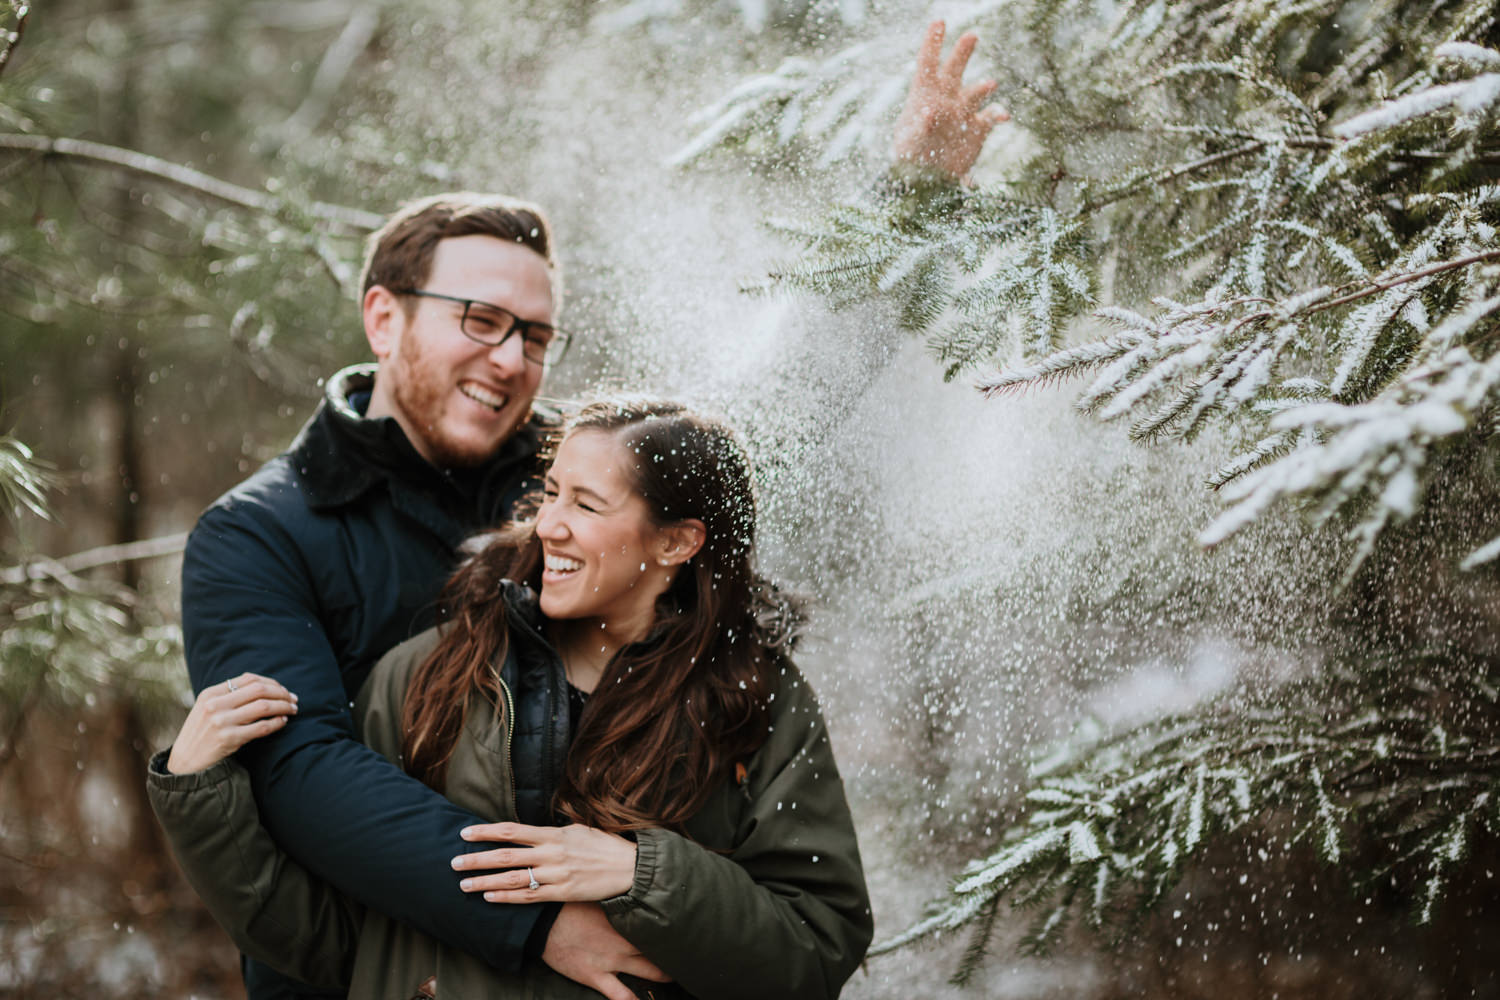 couple playing with snow during the engagement shoot at Wyre forest in England